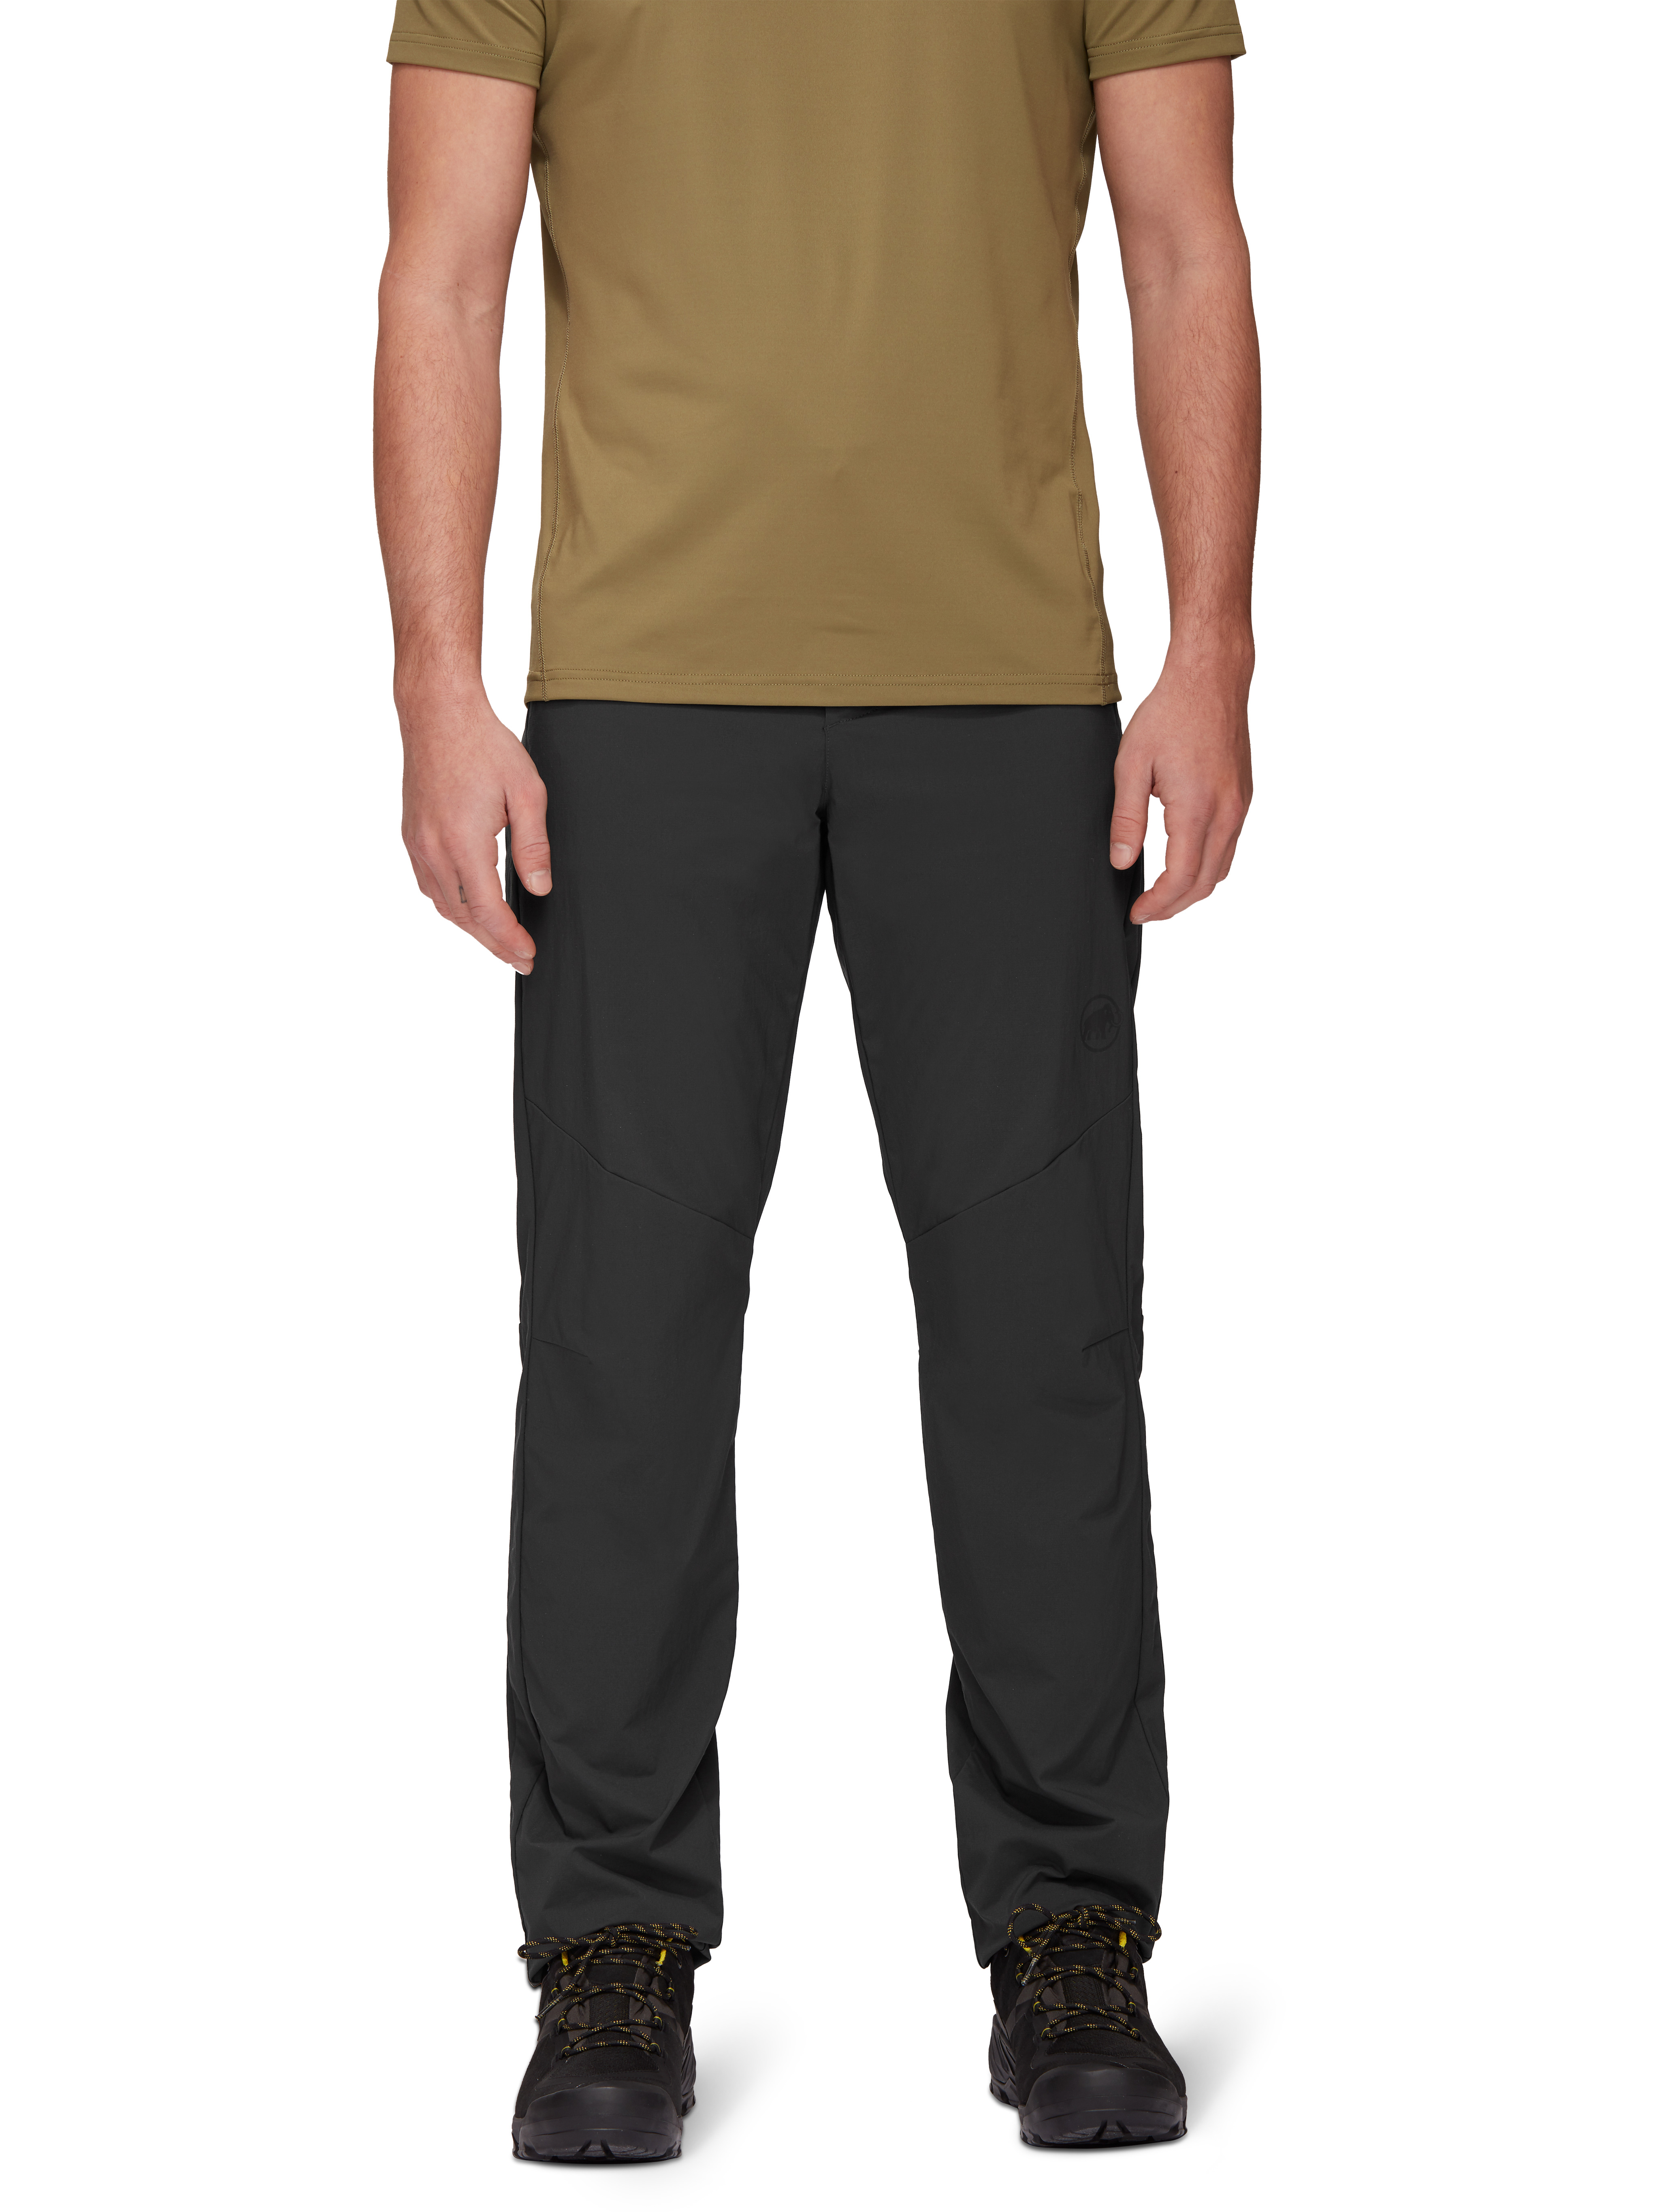 Hiking Pants RG Men product image